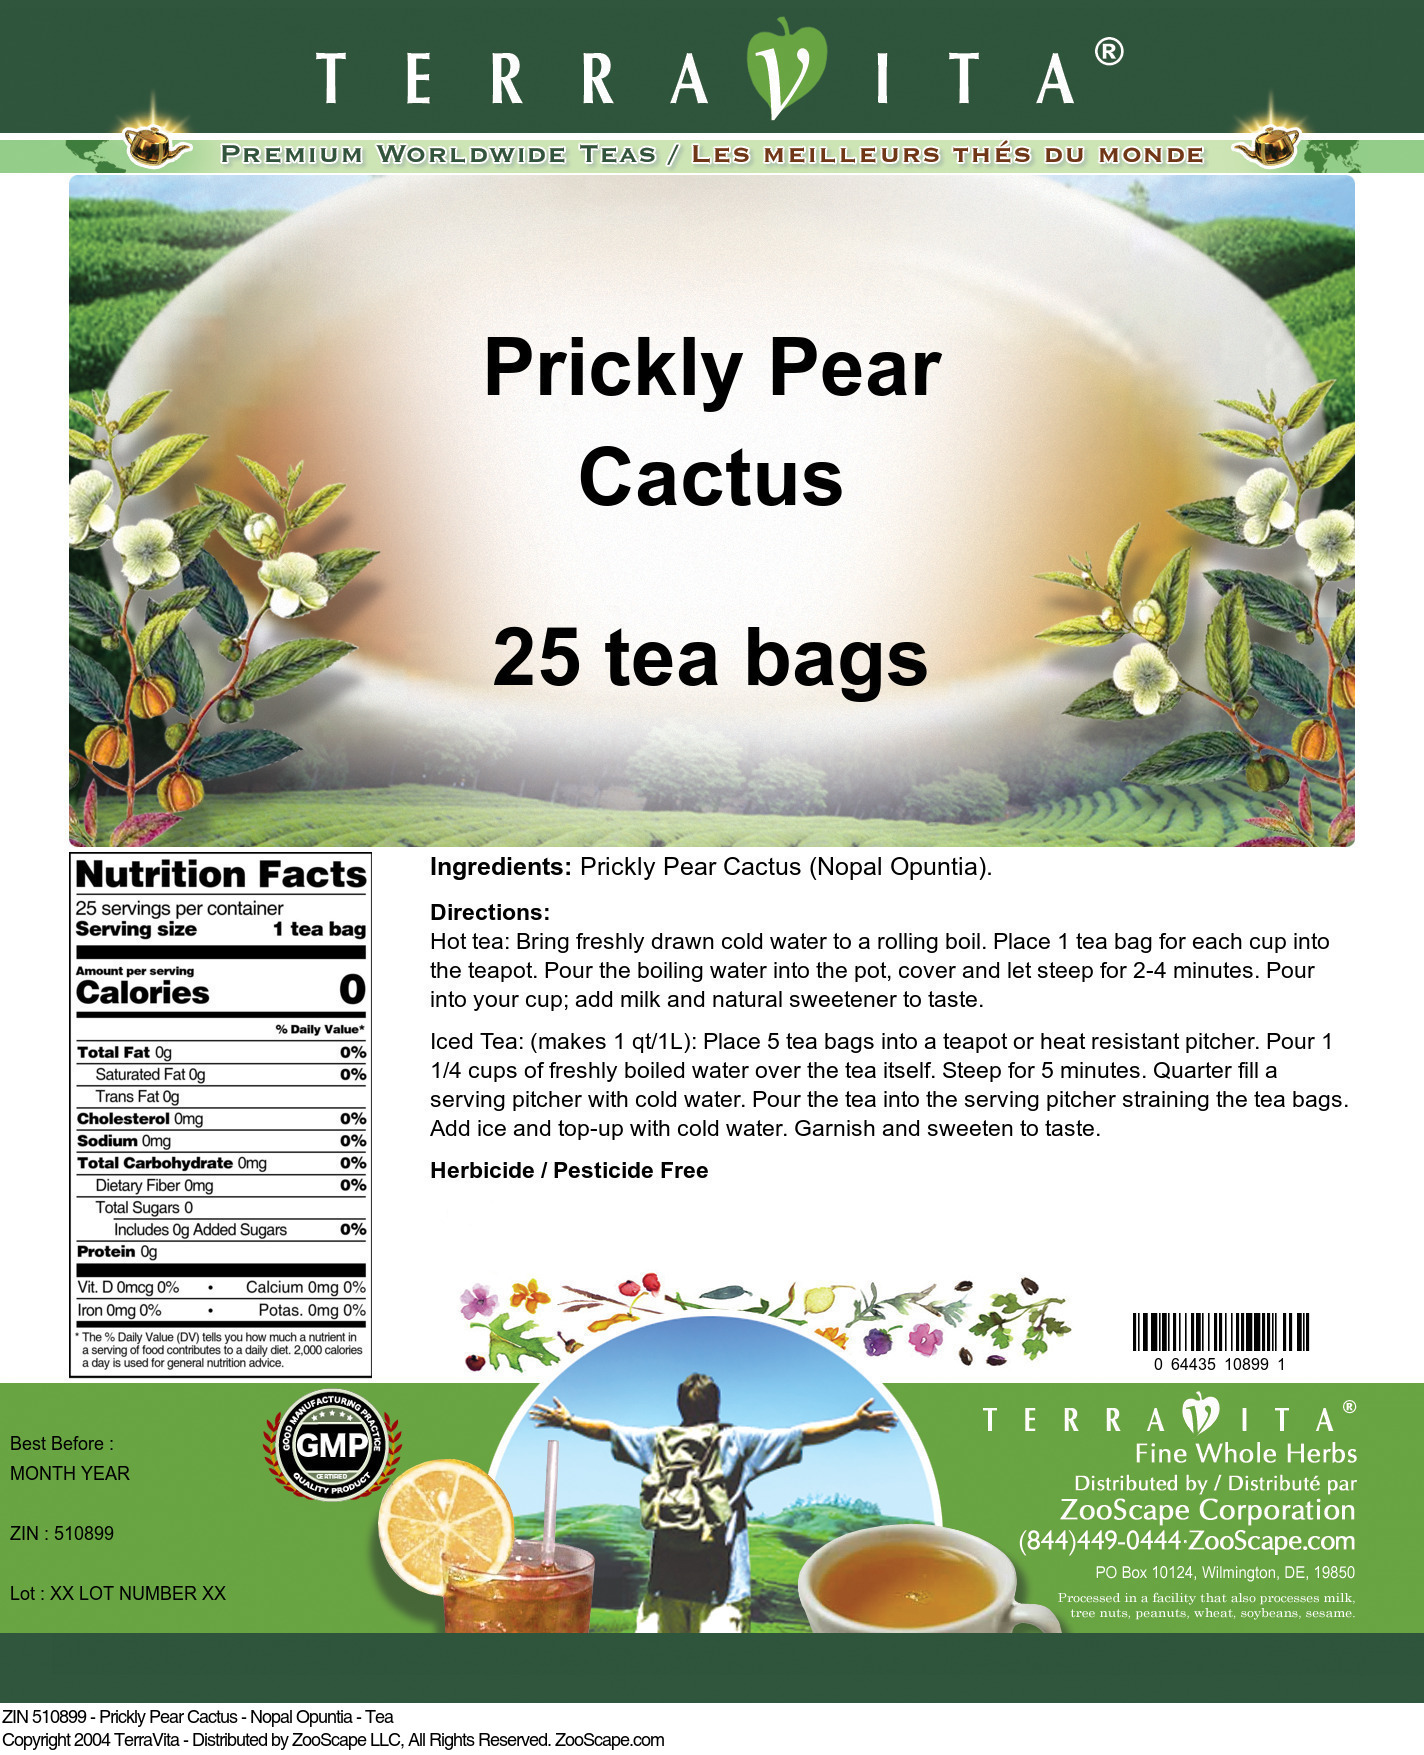 Prickly Pear Cactus <BR>(Nopal Opuntia) 4:1 Extract